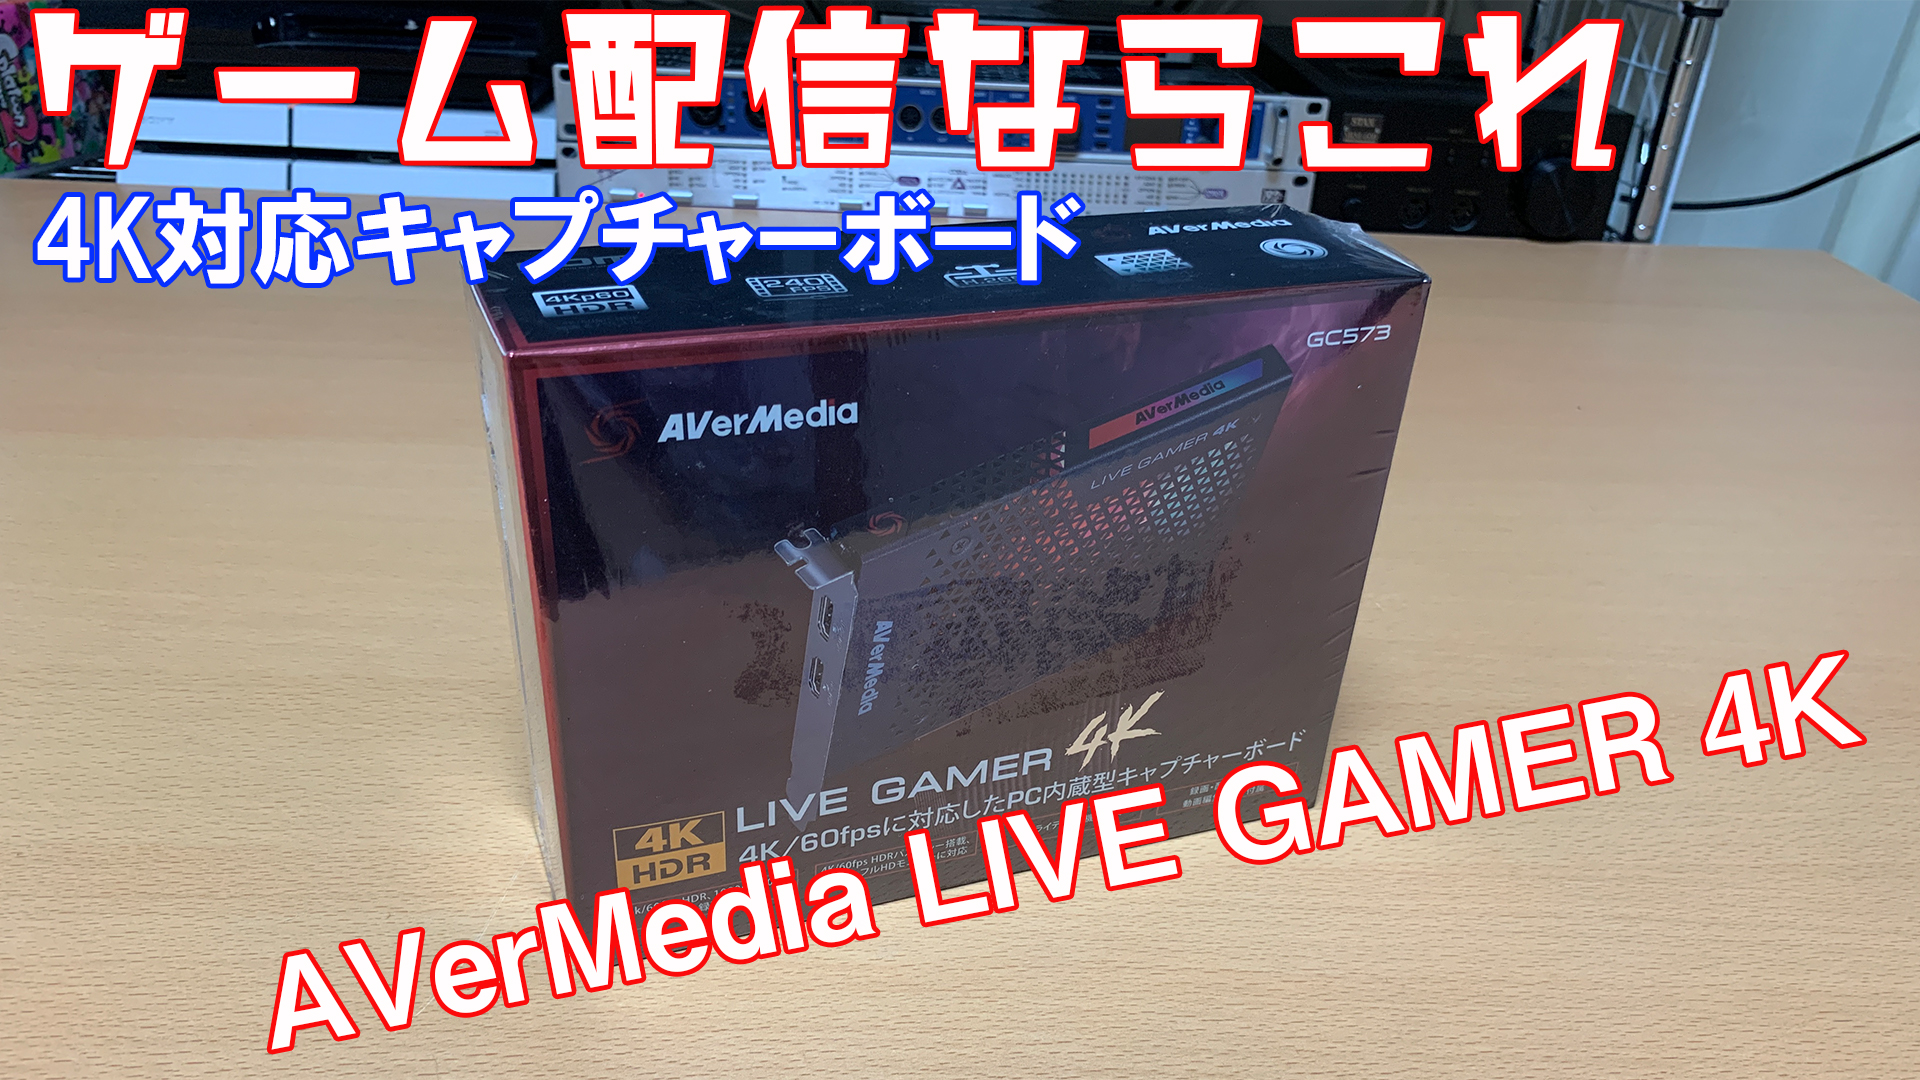 Pc ゲーム 配信